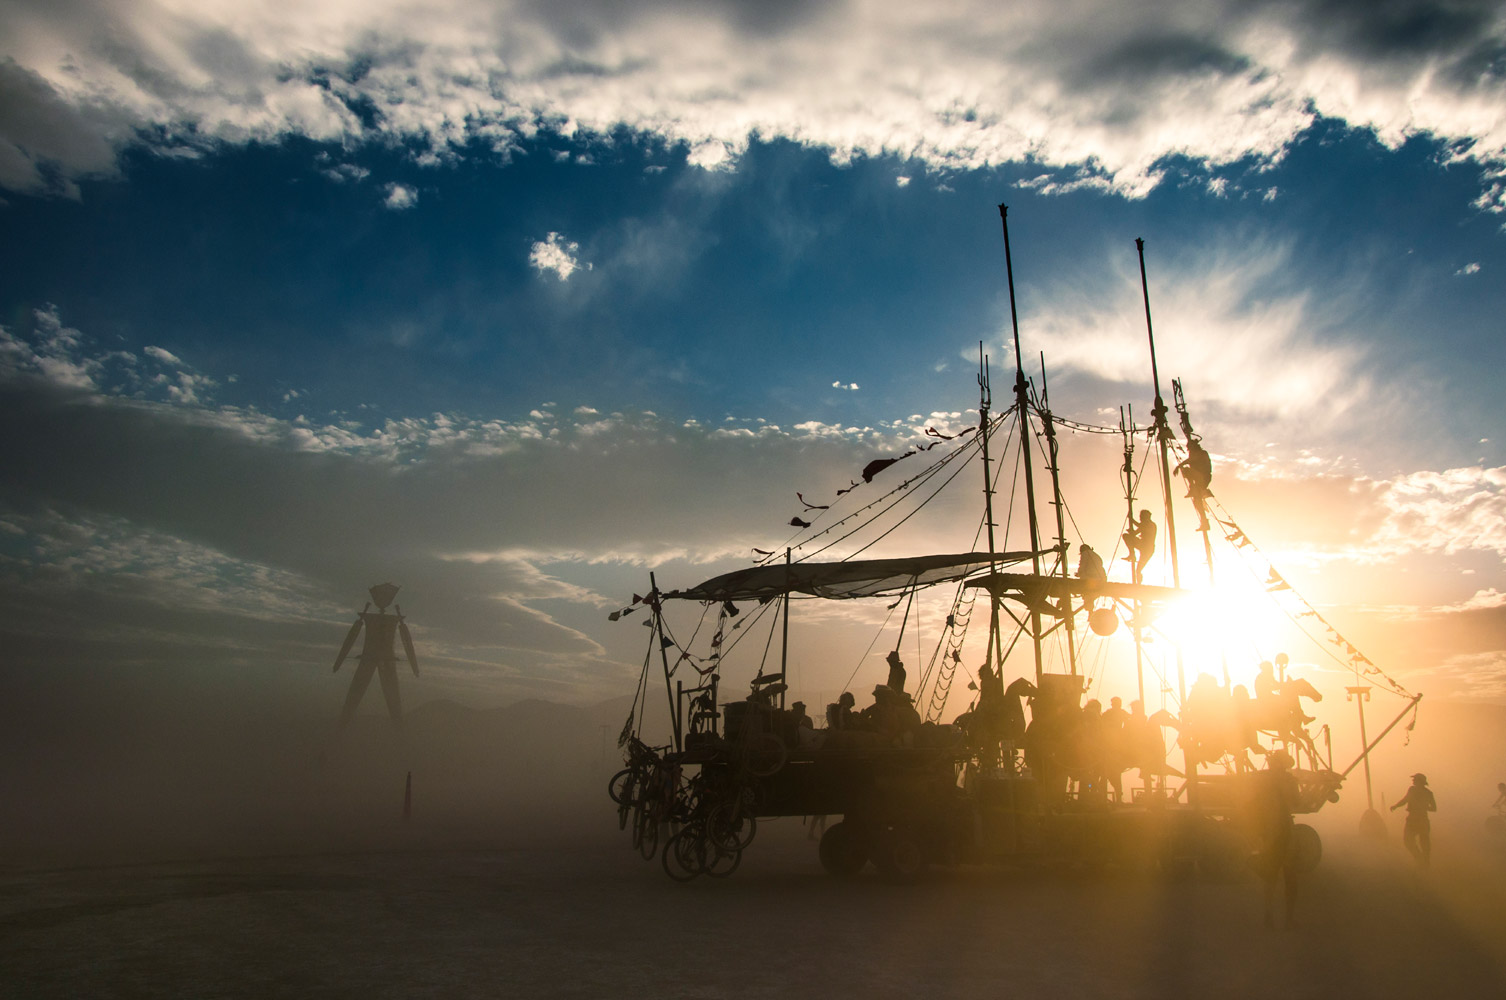 Sunset on the playa - Burning Man, Nevada, 2014